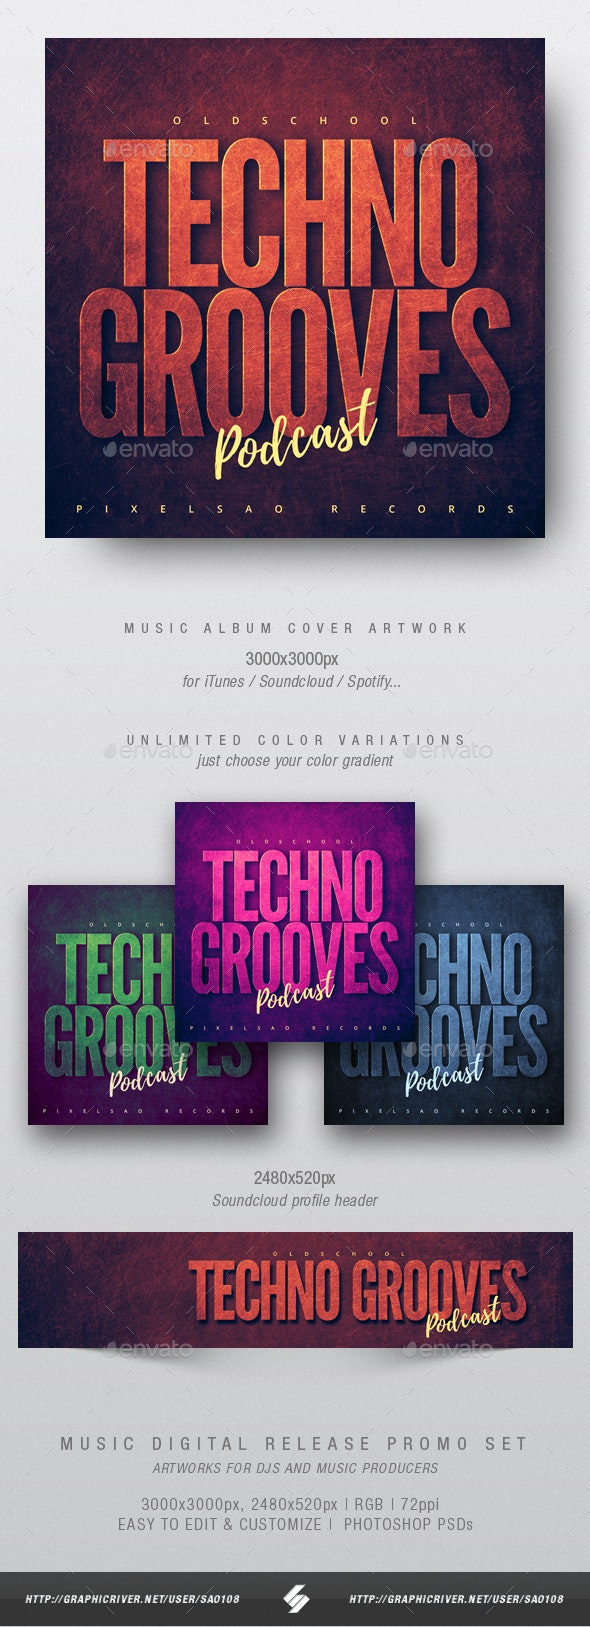 Oldschool Techno Grooves - Audio Podcast Cover Design Template - Miscellaneous Social Media